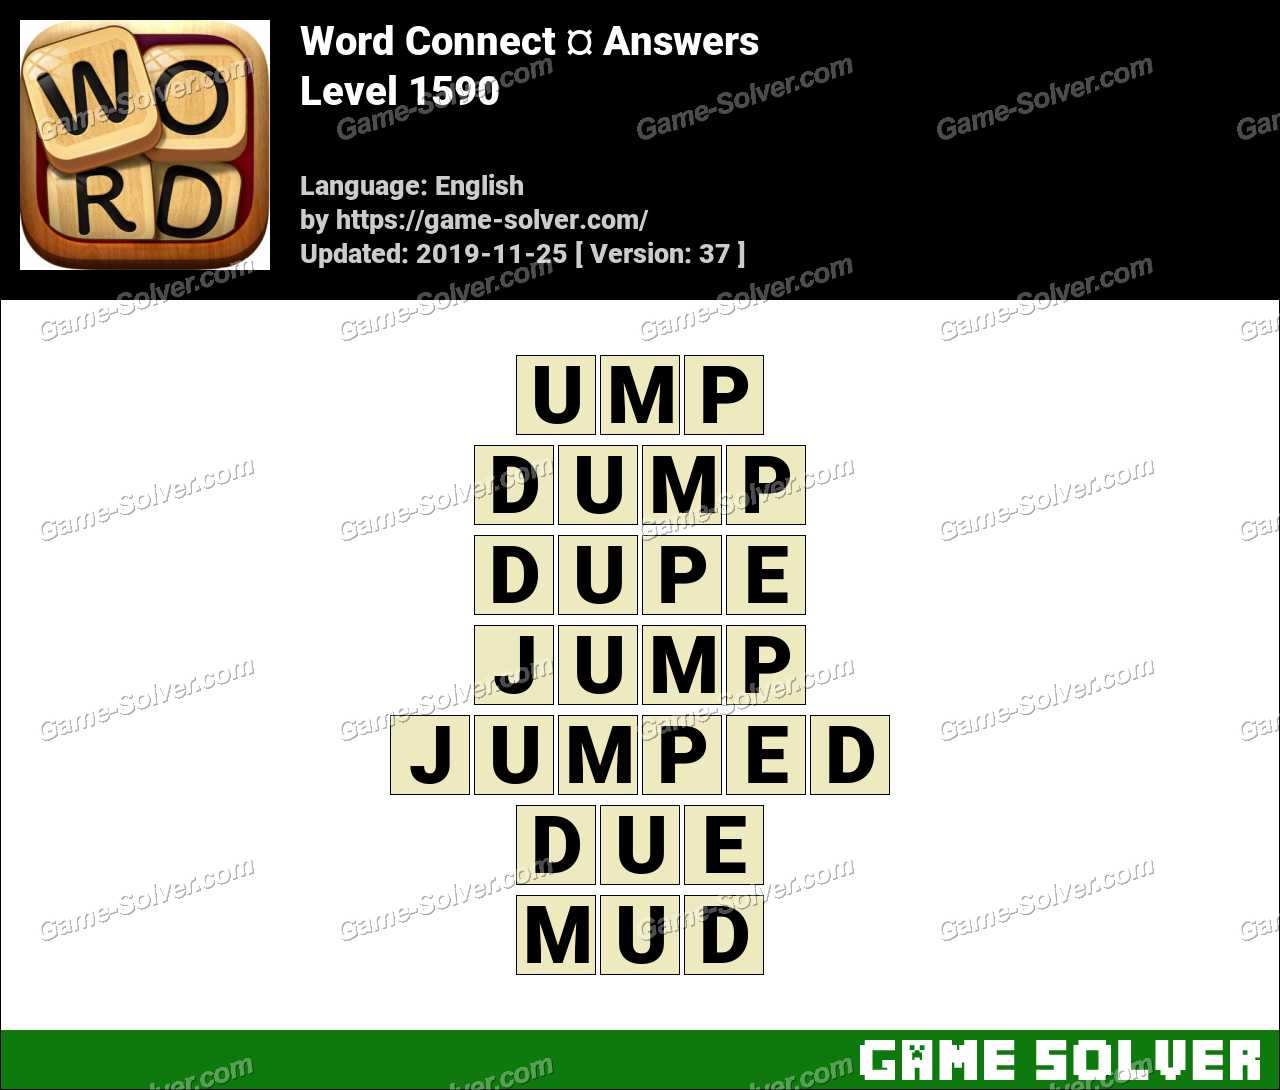 Word Connect Level 1590 Answers